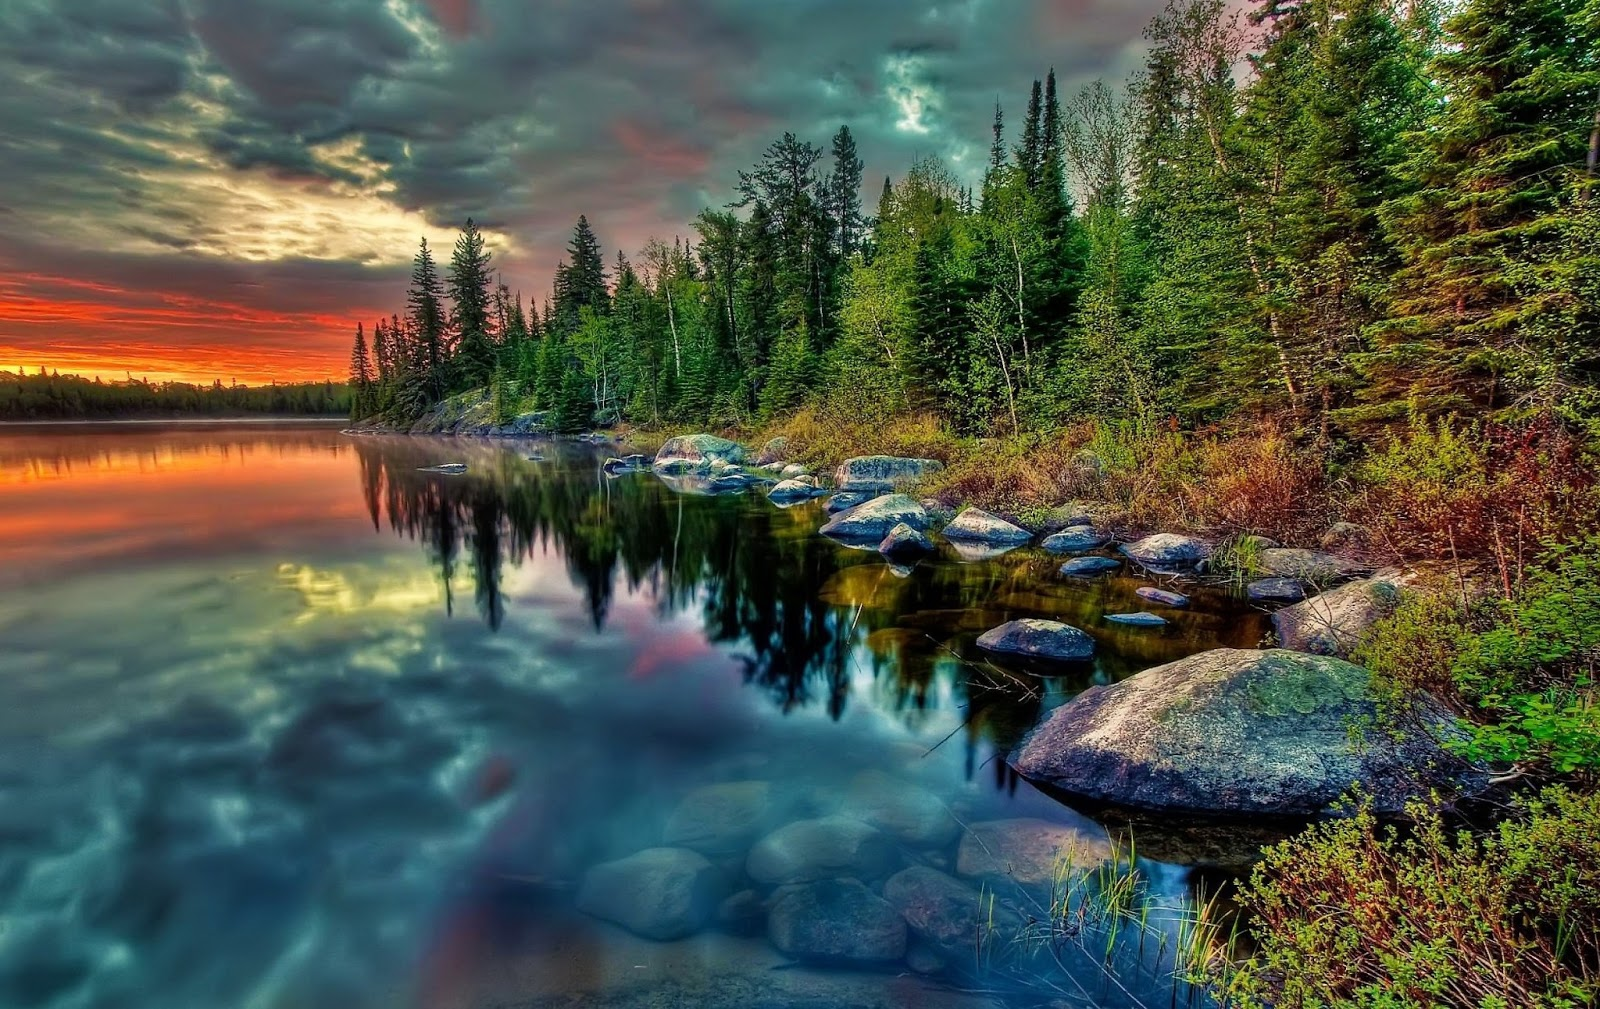 amazing nature hd wallpapers 1080p amazing nature hd wallpapers 1080p 1600x1009